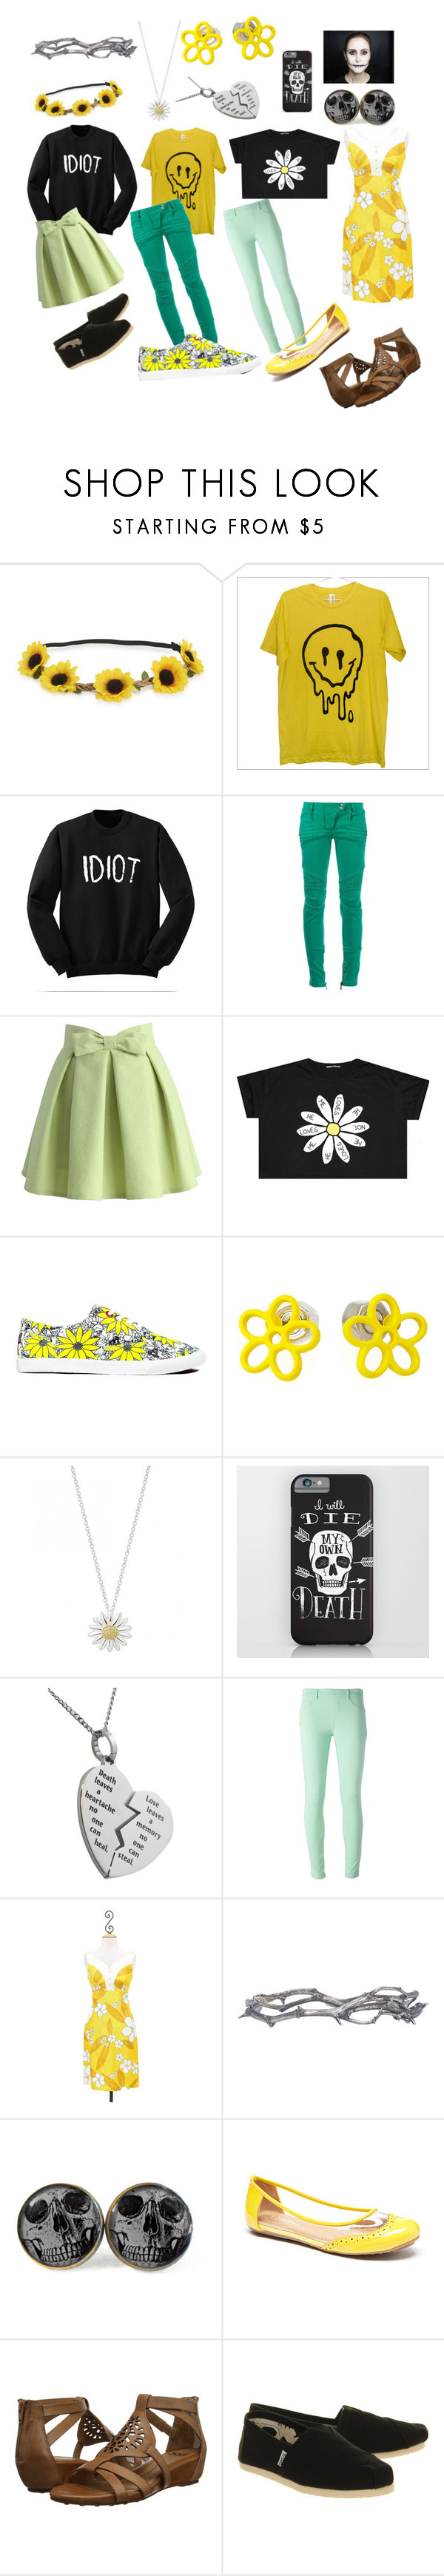 """Undertale: Flowey"" by notasupervillian ❤ liked on Polyvore featuring moda, Aéropostale, Balmain, Chicwish, BucketFeet, Marc by Marc Jacobs, Daisy Jewellery, Blumarine, Pearls Before Swine e Söfft"